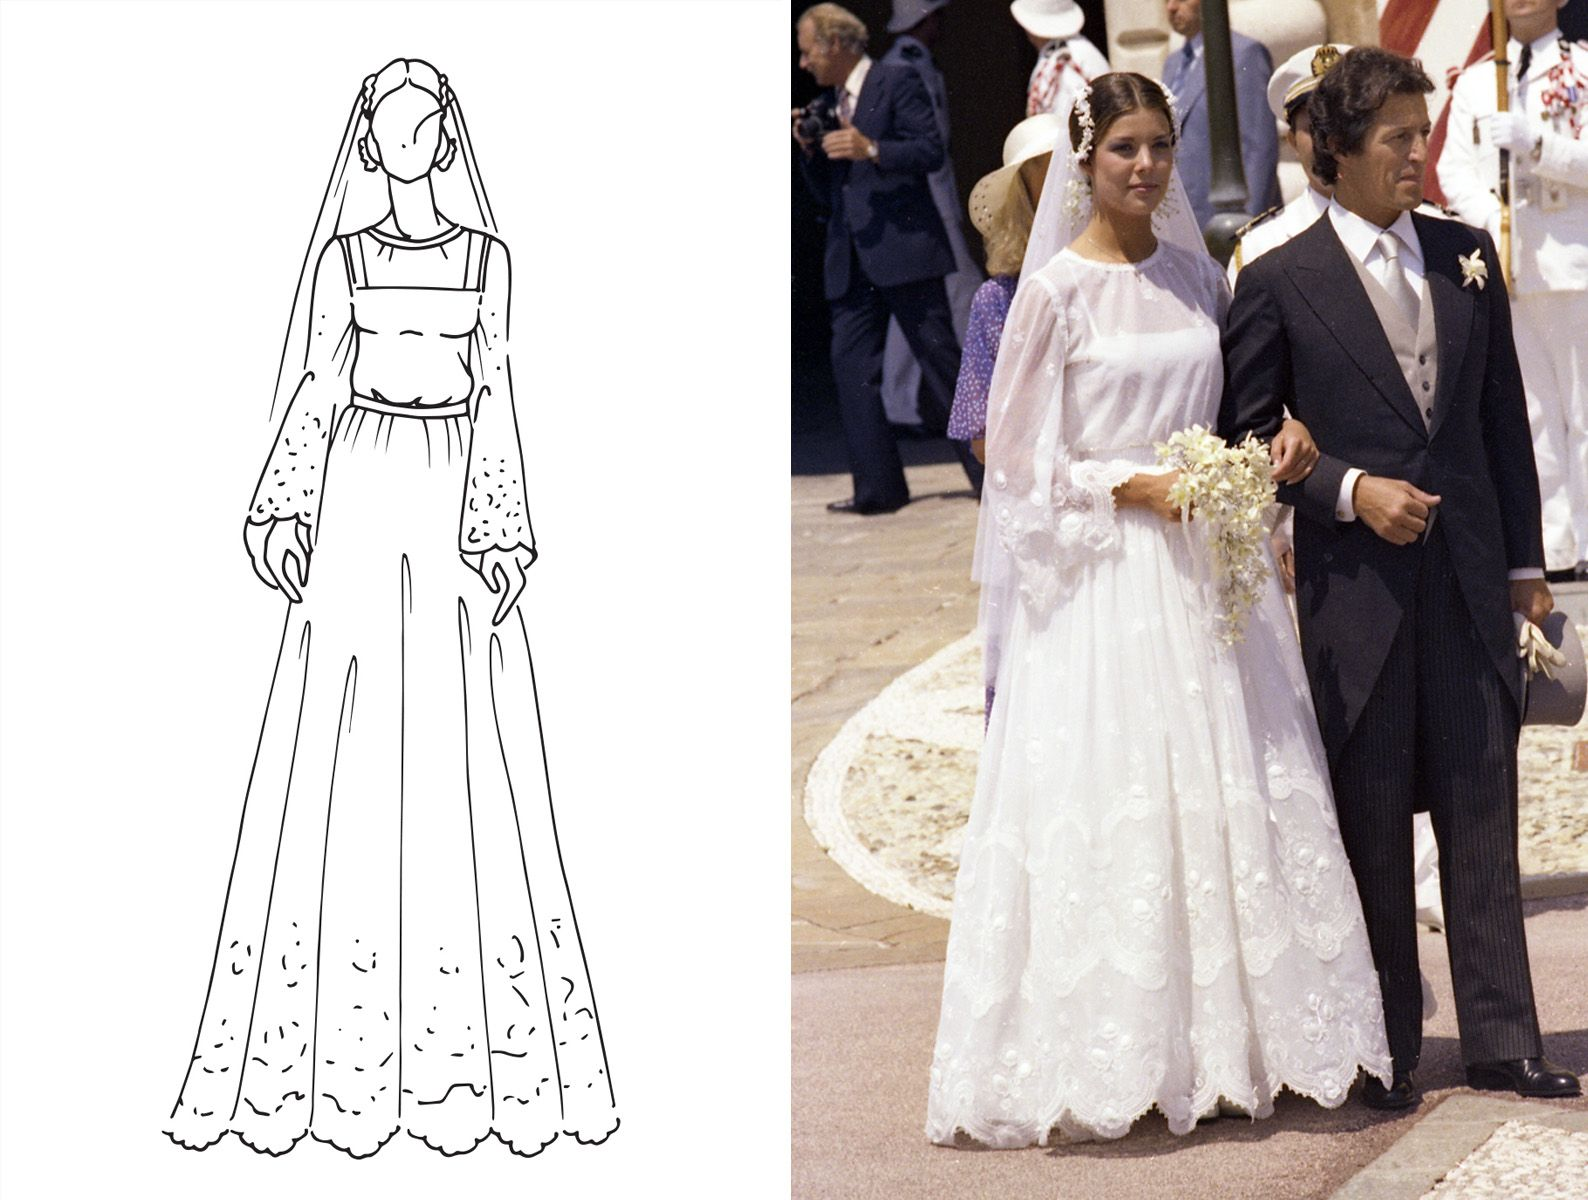 100 years of iconic royal wedding dresses | 100 years of ...